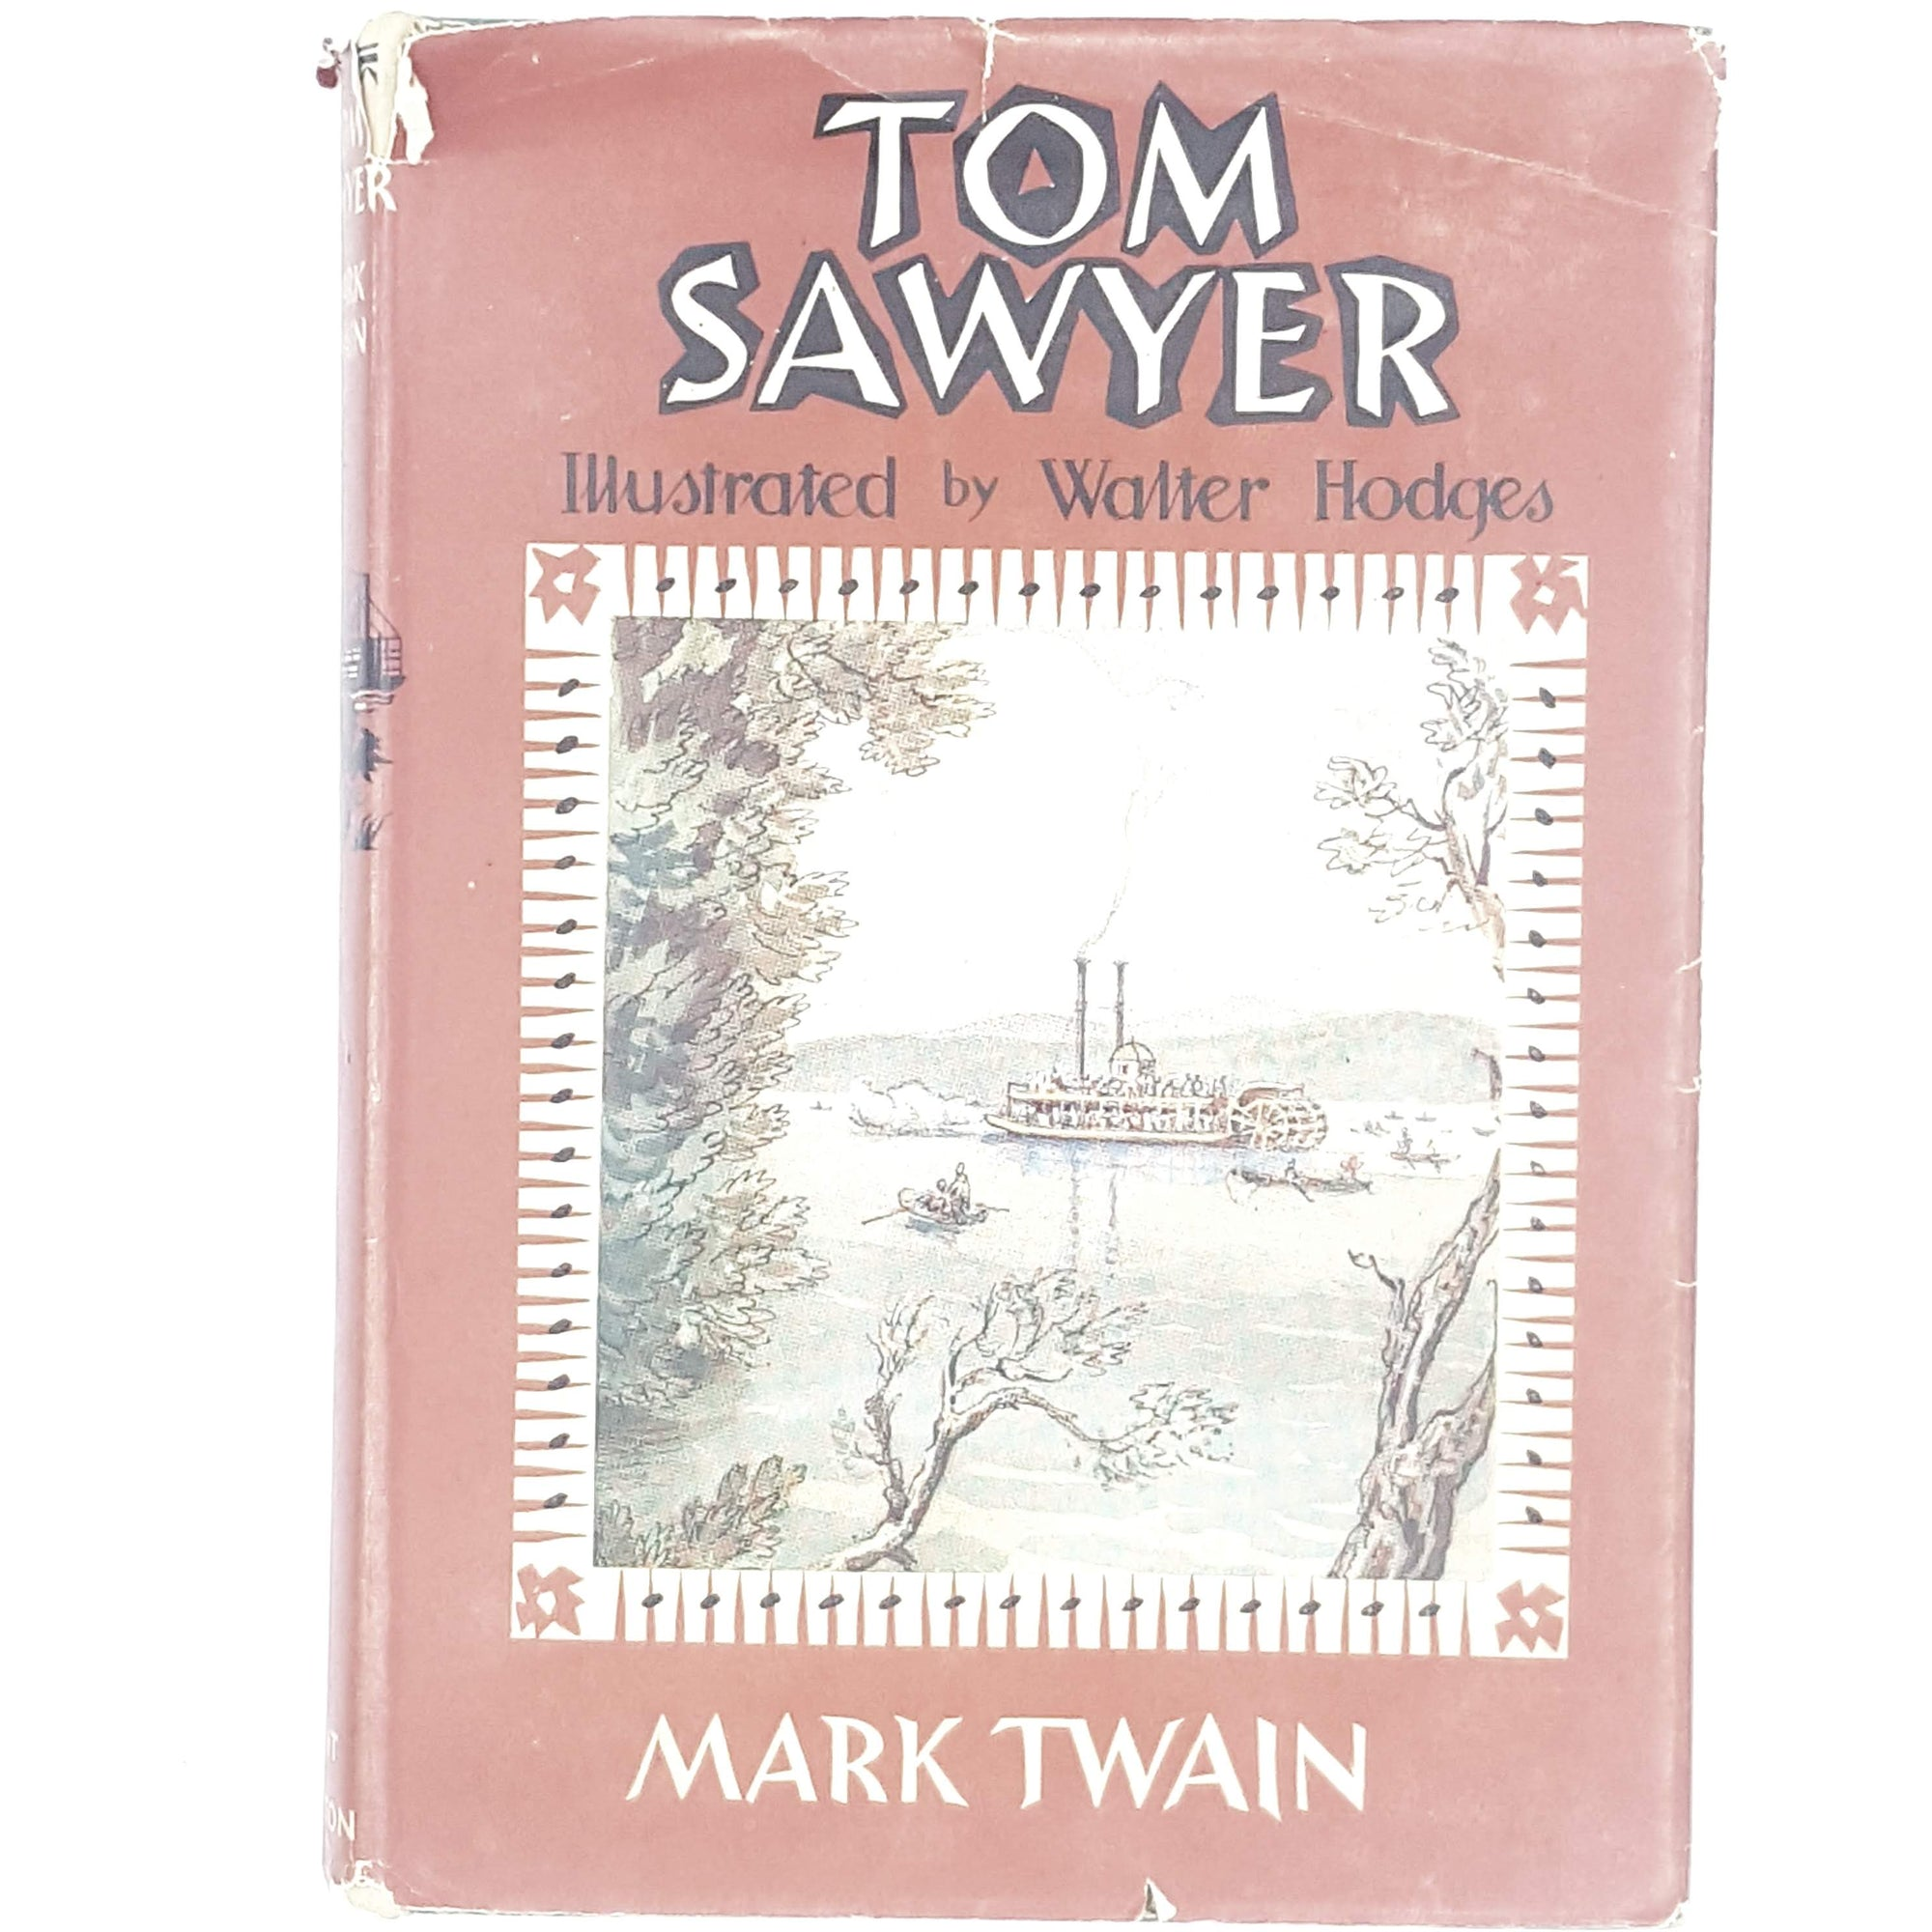 First Edition Mark Twain's Tom Sawyer 1955